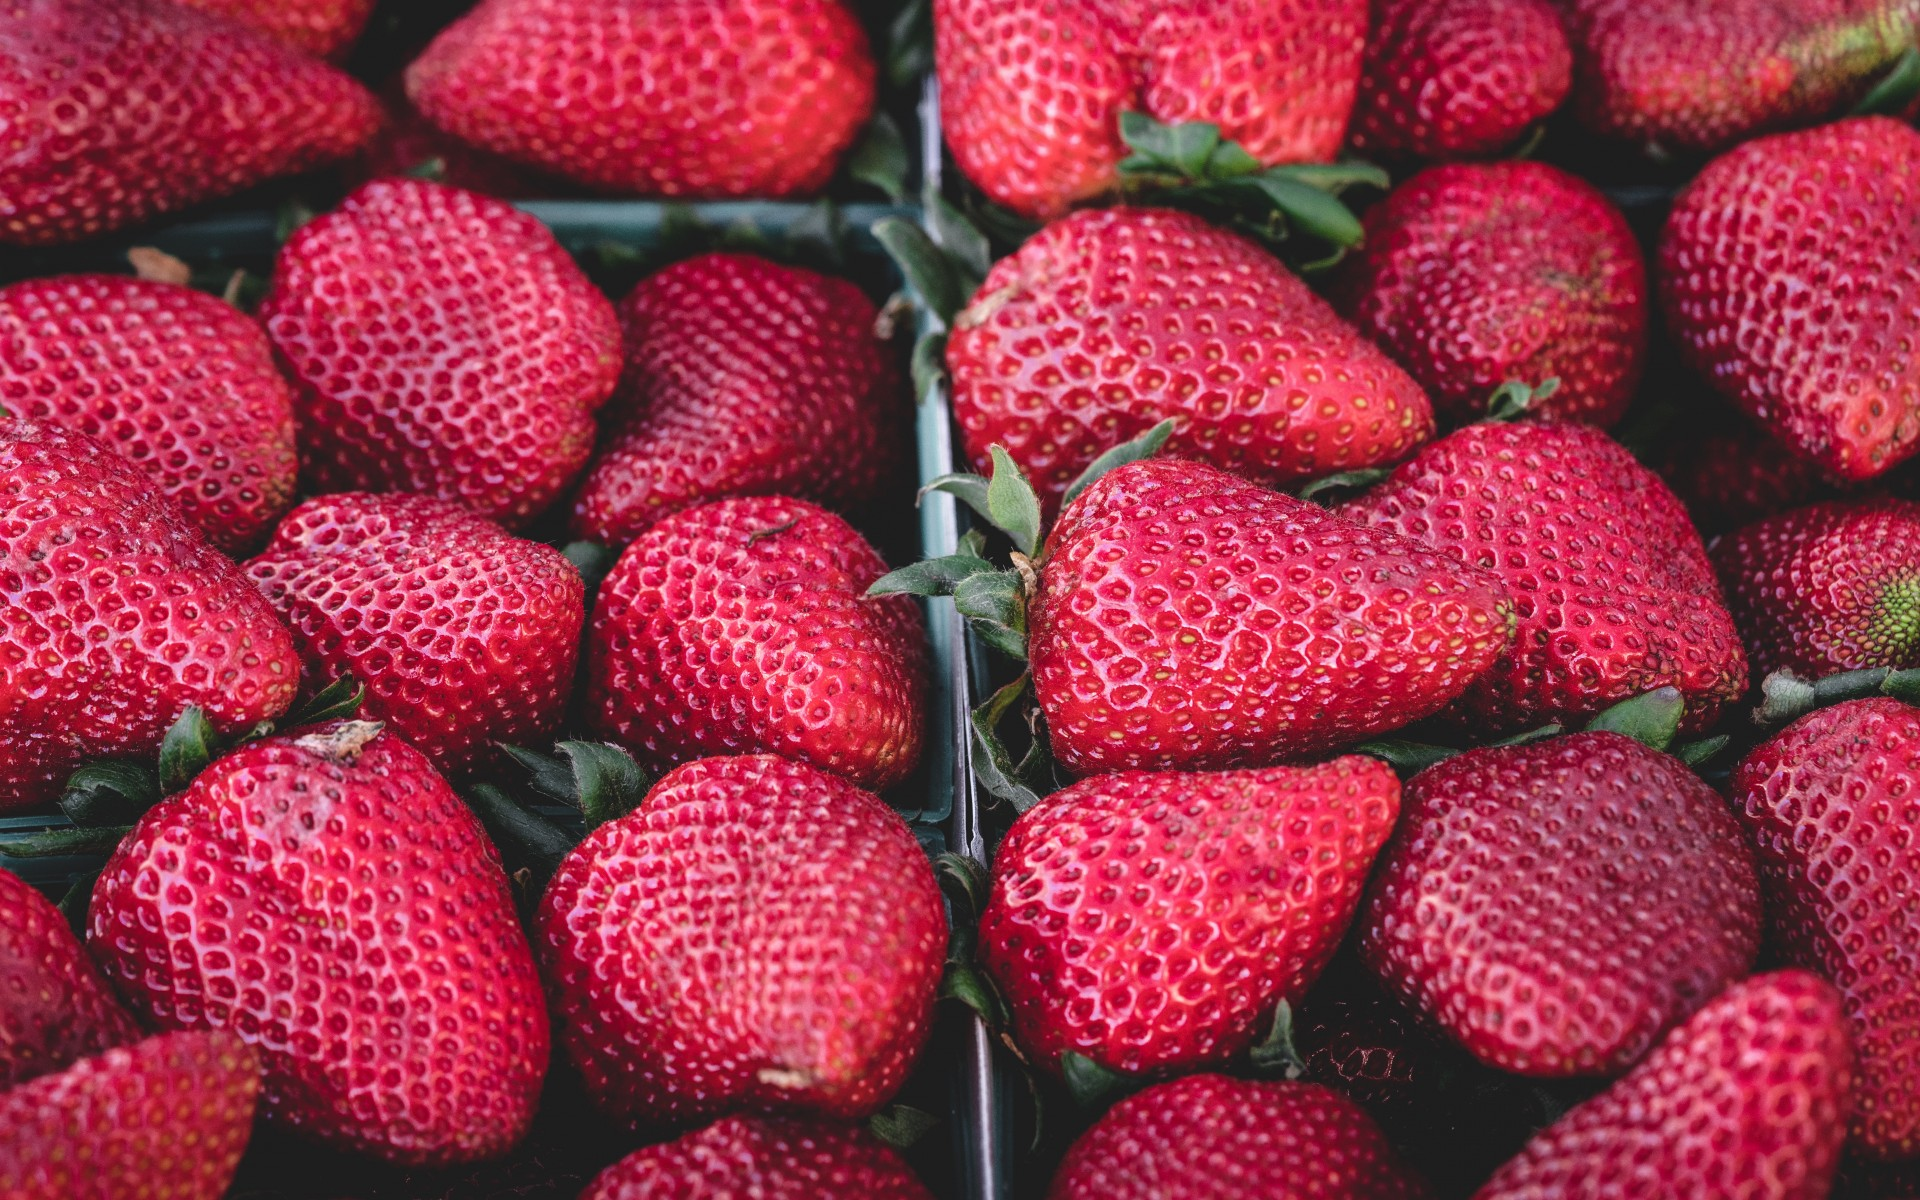 Strawberry tails, lot strawberries, boxes, fruits,